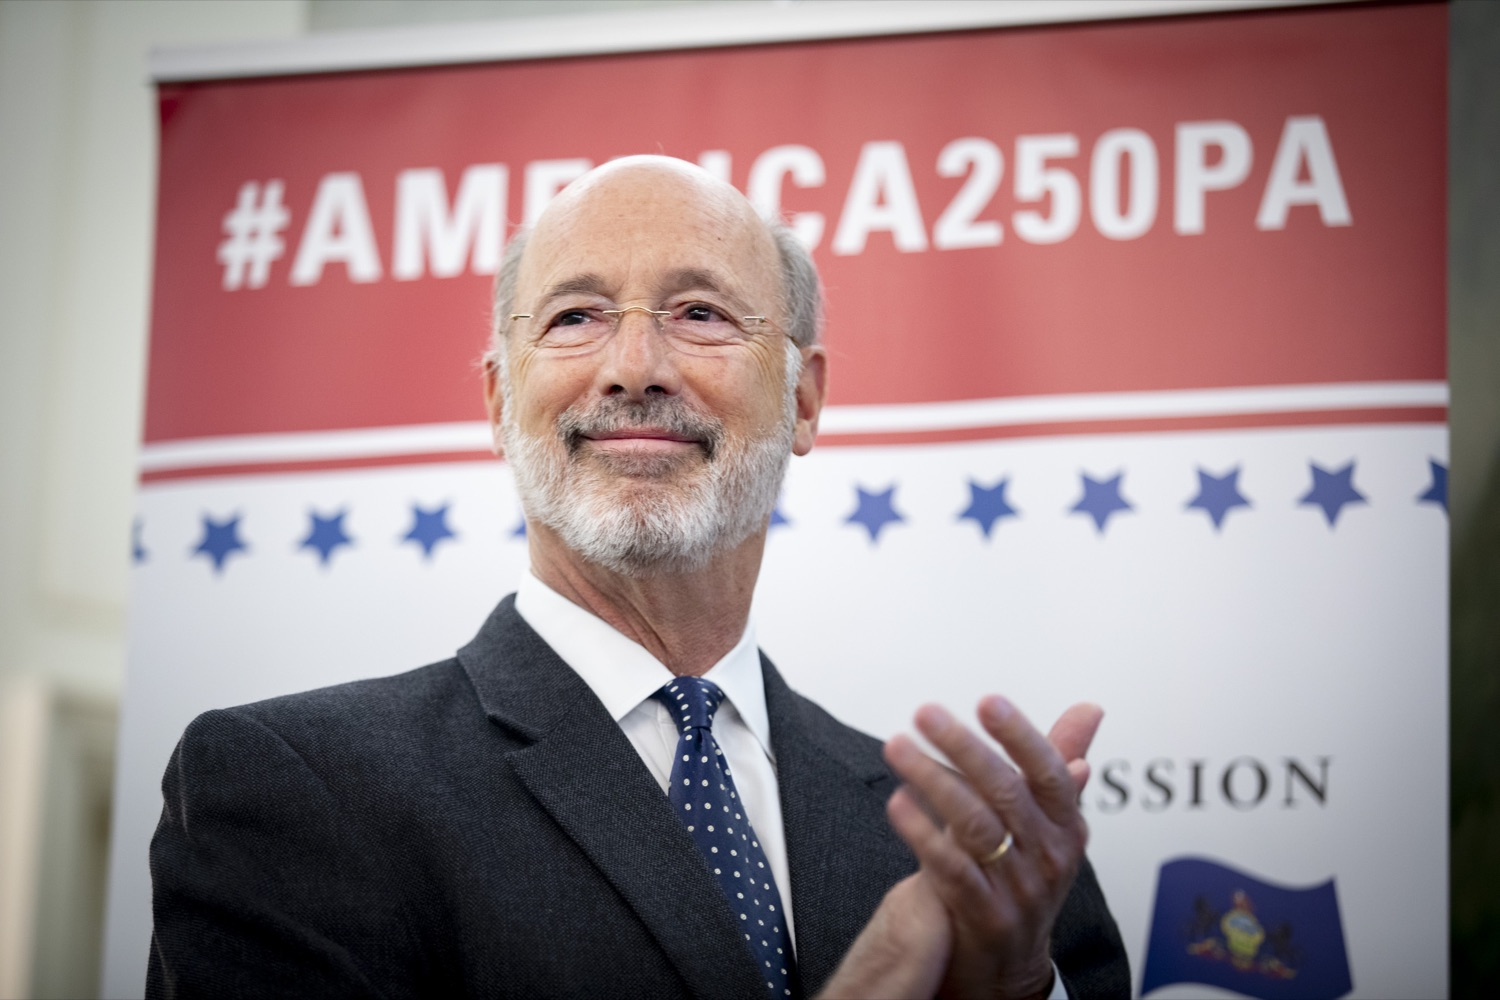 """<a href=""""http://filesource.abacast.com/commonwealthofpa/photo/17424_GOV_AMERICA250_CZ_15.JPG"""" target=""""_blank"""">⇣Download Photo<br></a>Pennsylvania officially recognized the members of the America250PA commission at a swearing-in ceremony held at the Governors Residence on September 17, 2019."""